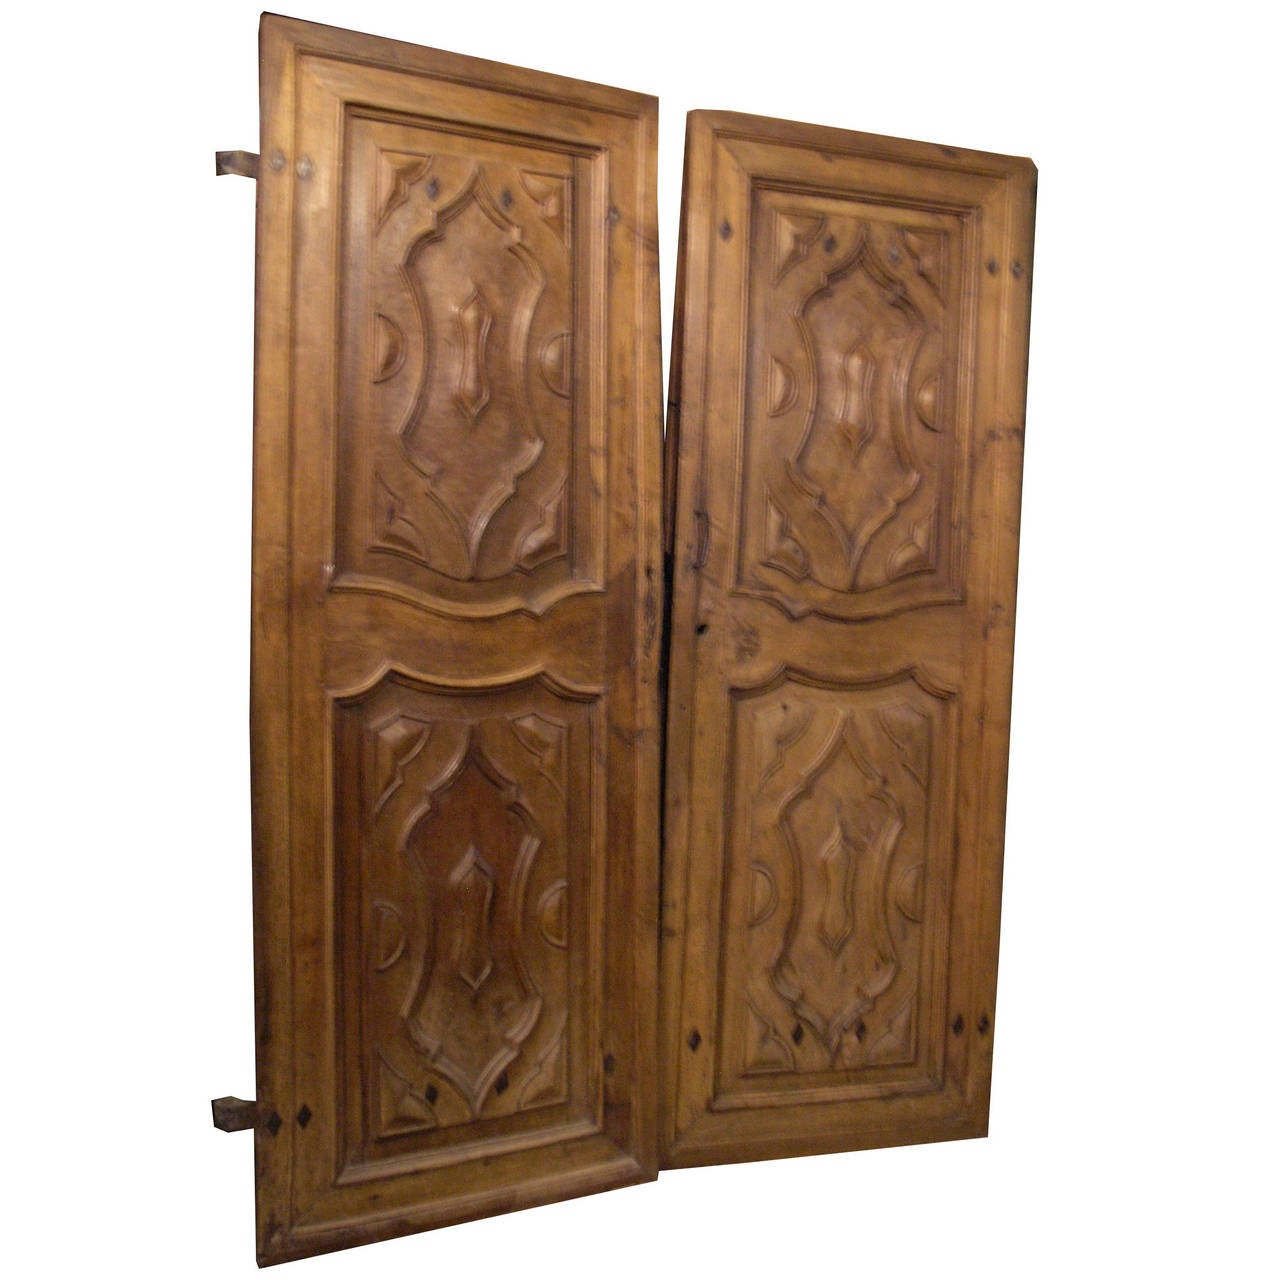 Antique exterior doors for sale wooden doors vintage for Exterior wood doors for sale